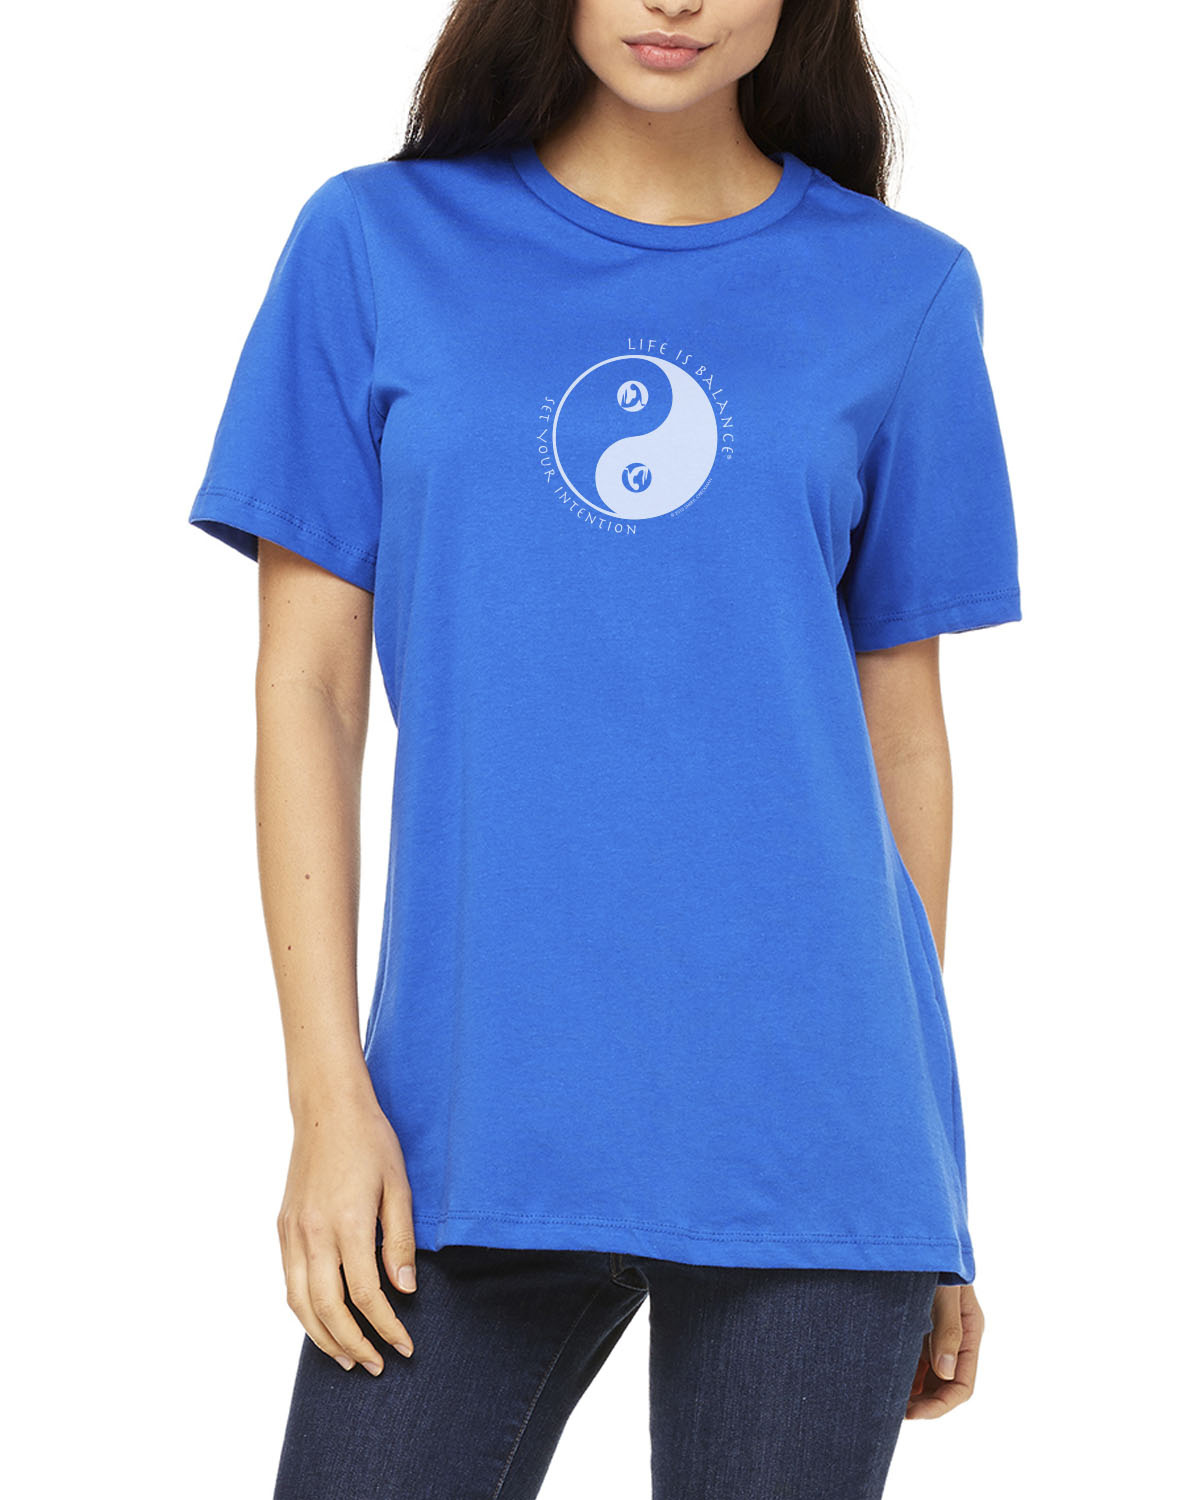 Women's short sleeve yoga t-shirt (Royal)